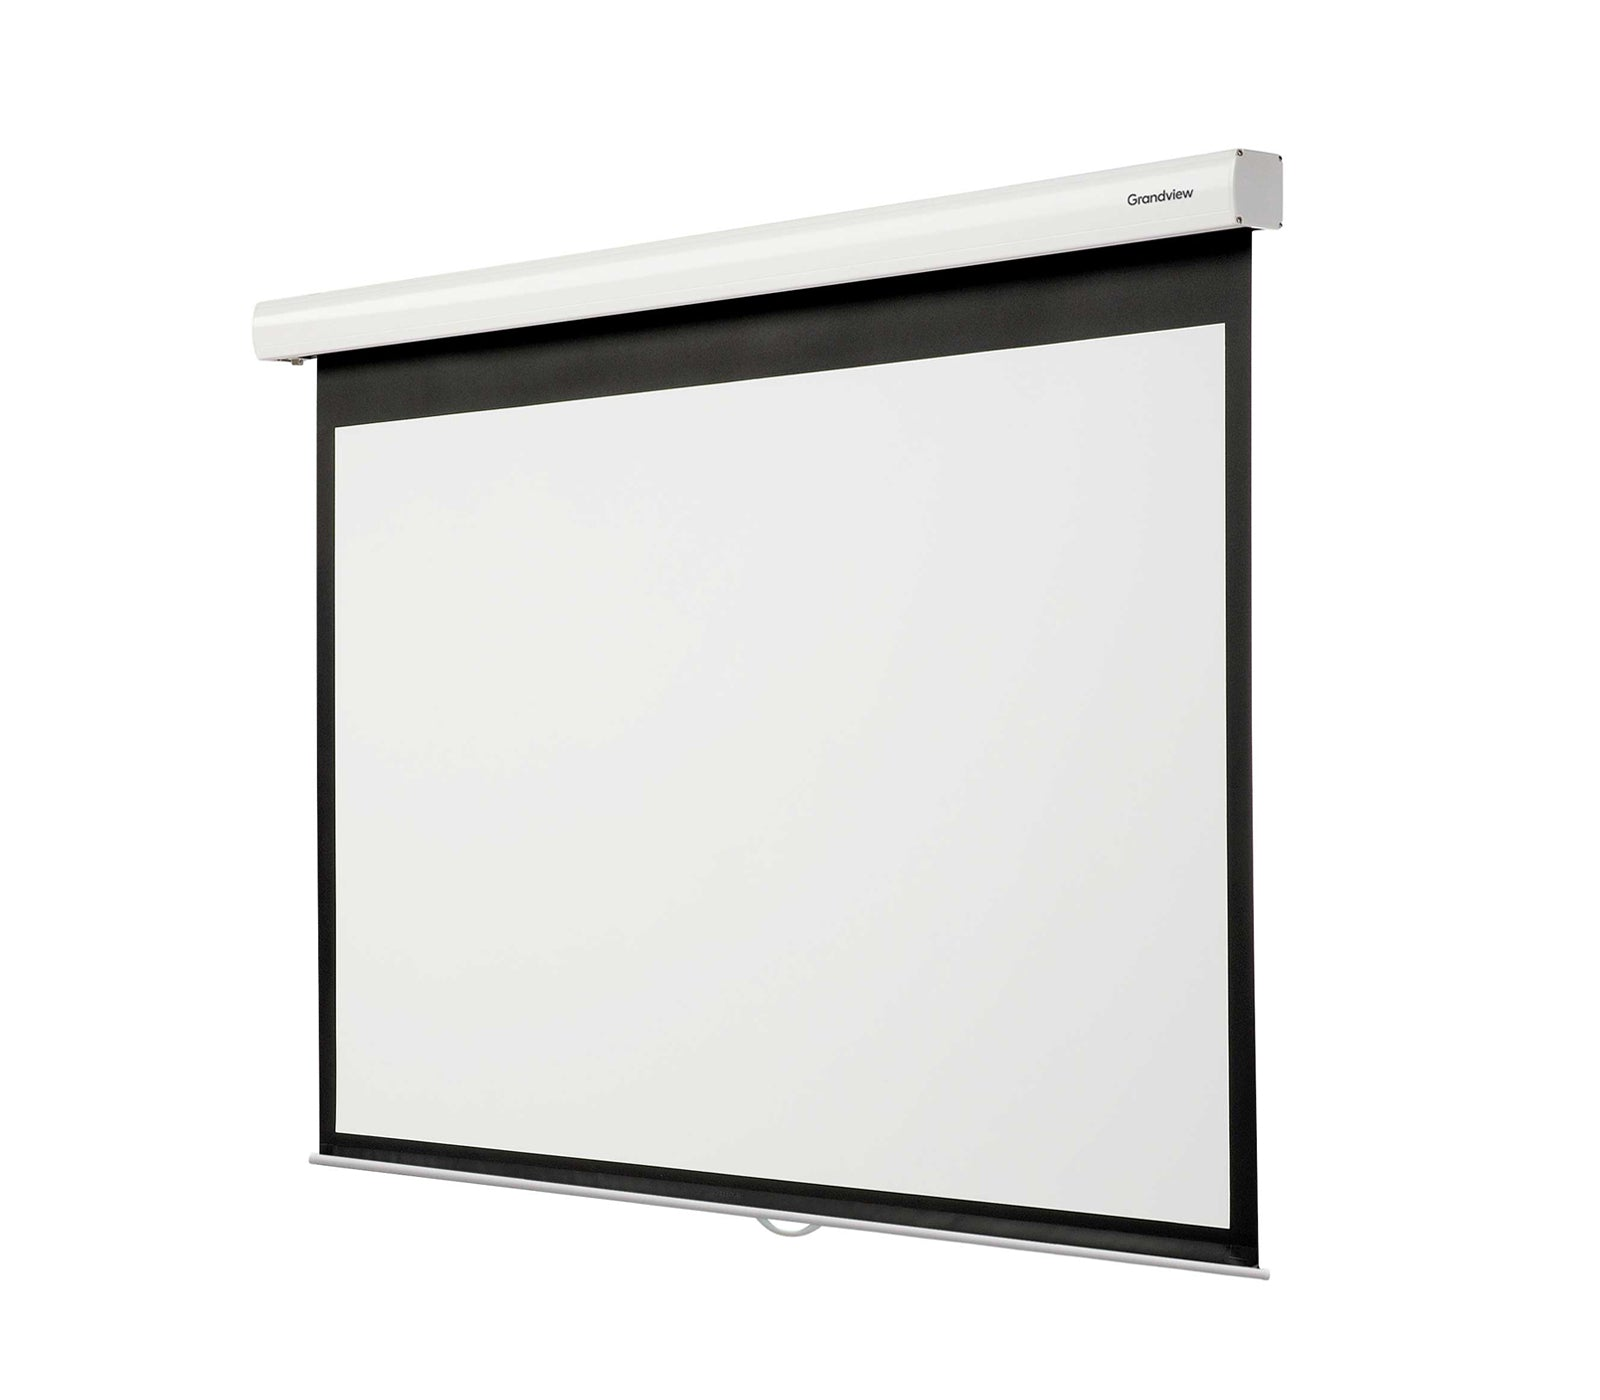 "Grandview 92"" 16:9 Cyber Series Manual Pull-down Screen WM-P92 CYBER-HDSCM"